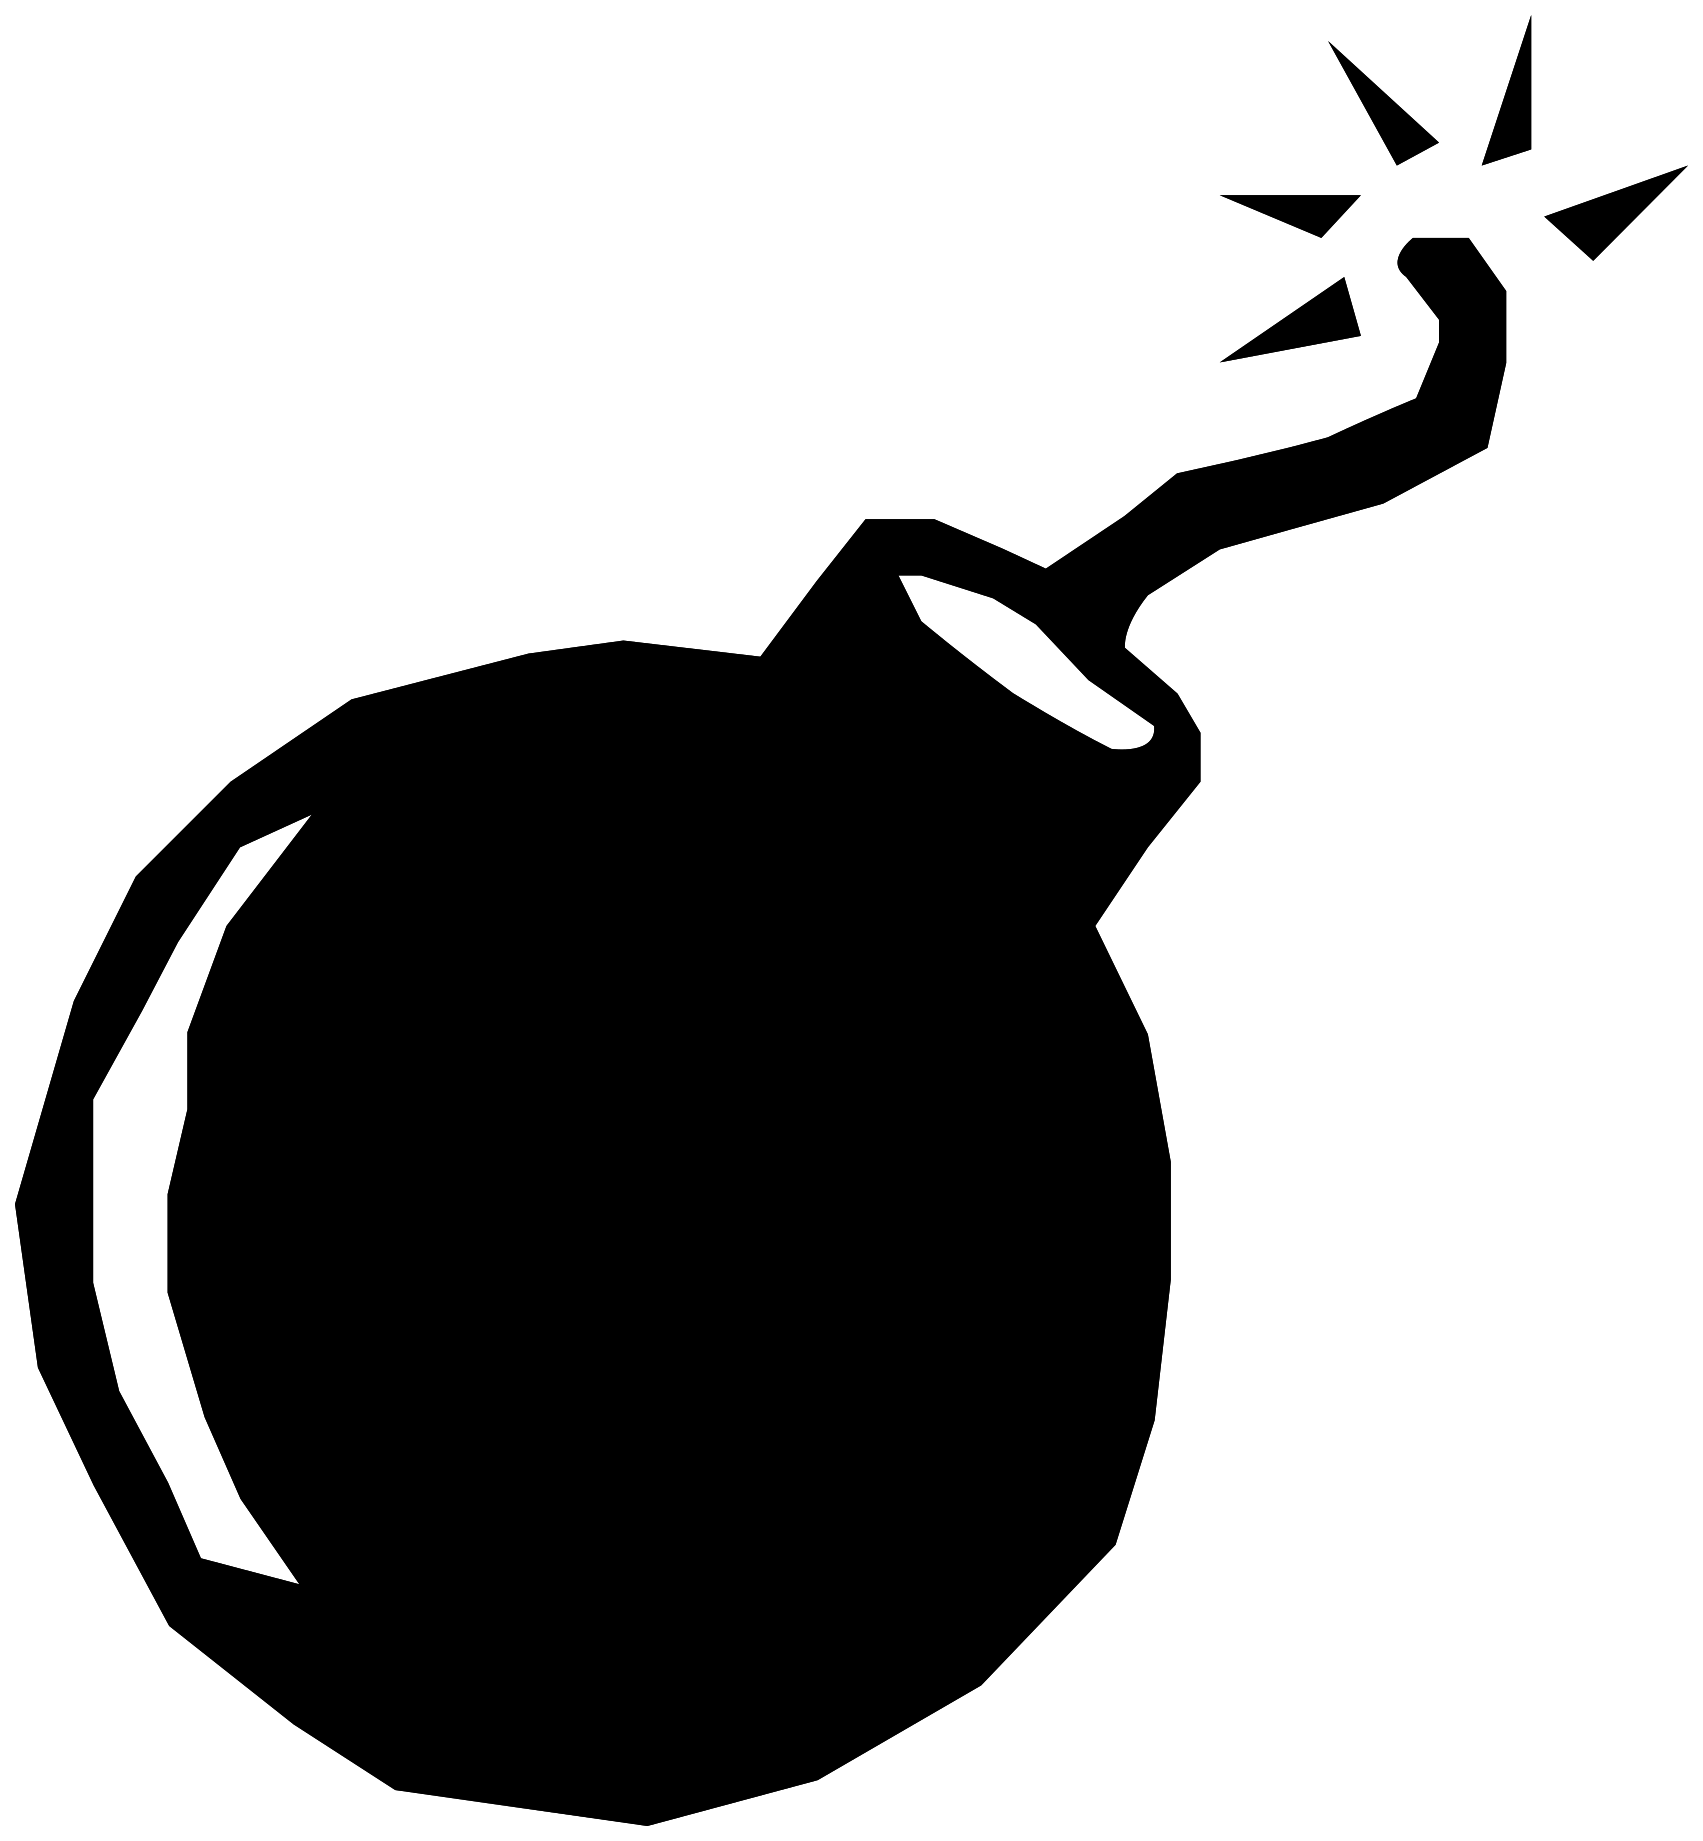 free bomb png with transparent background free bomb png with transparent background